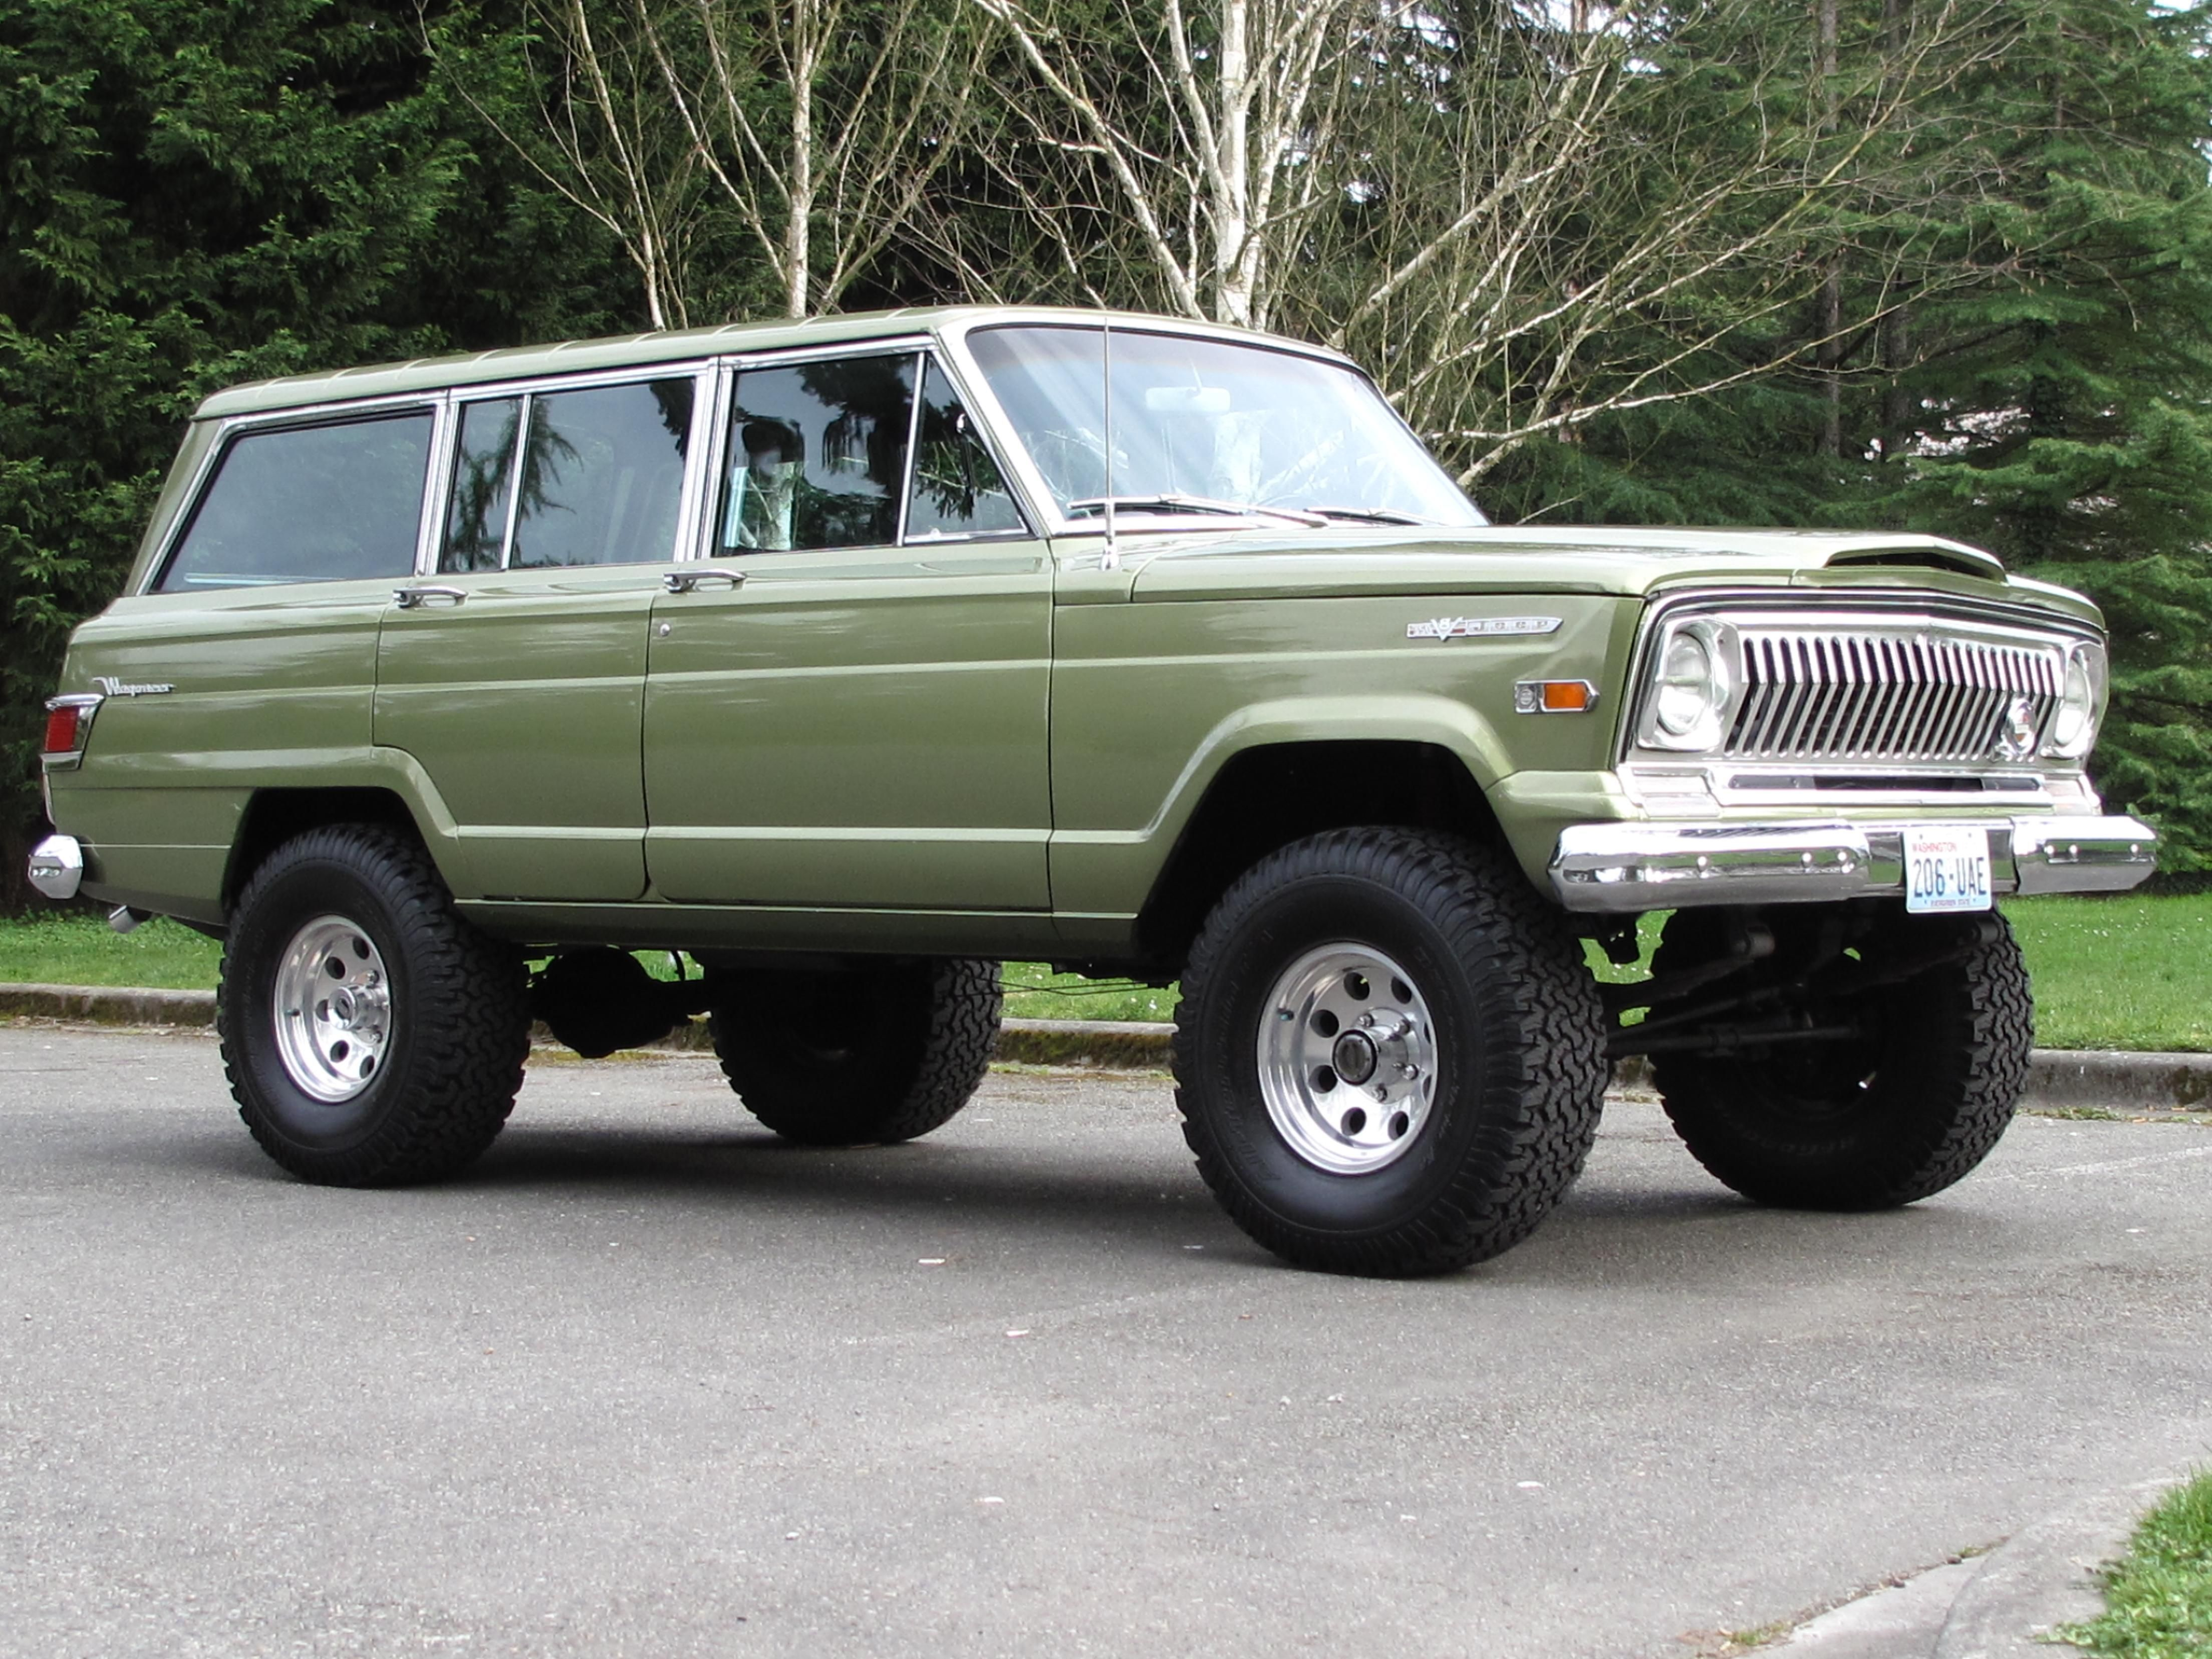 small resolution of check out customized 70jeep s 1970 jeep wagoneer photos parts specs modification for sale information and follow 70jeep in seattle wa for any latest